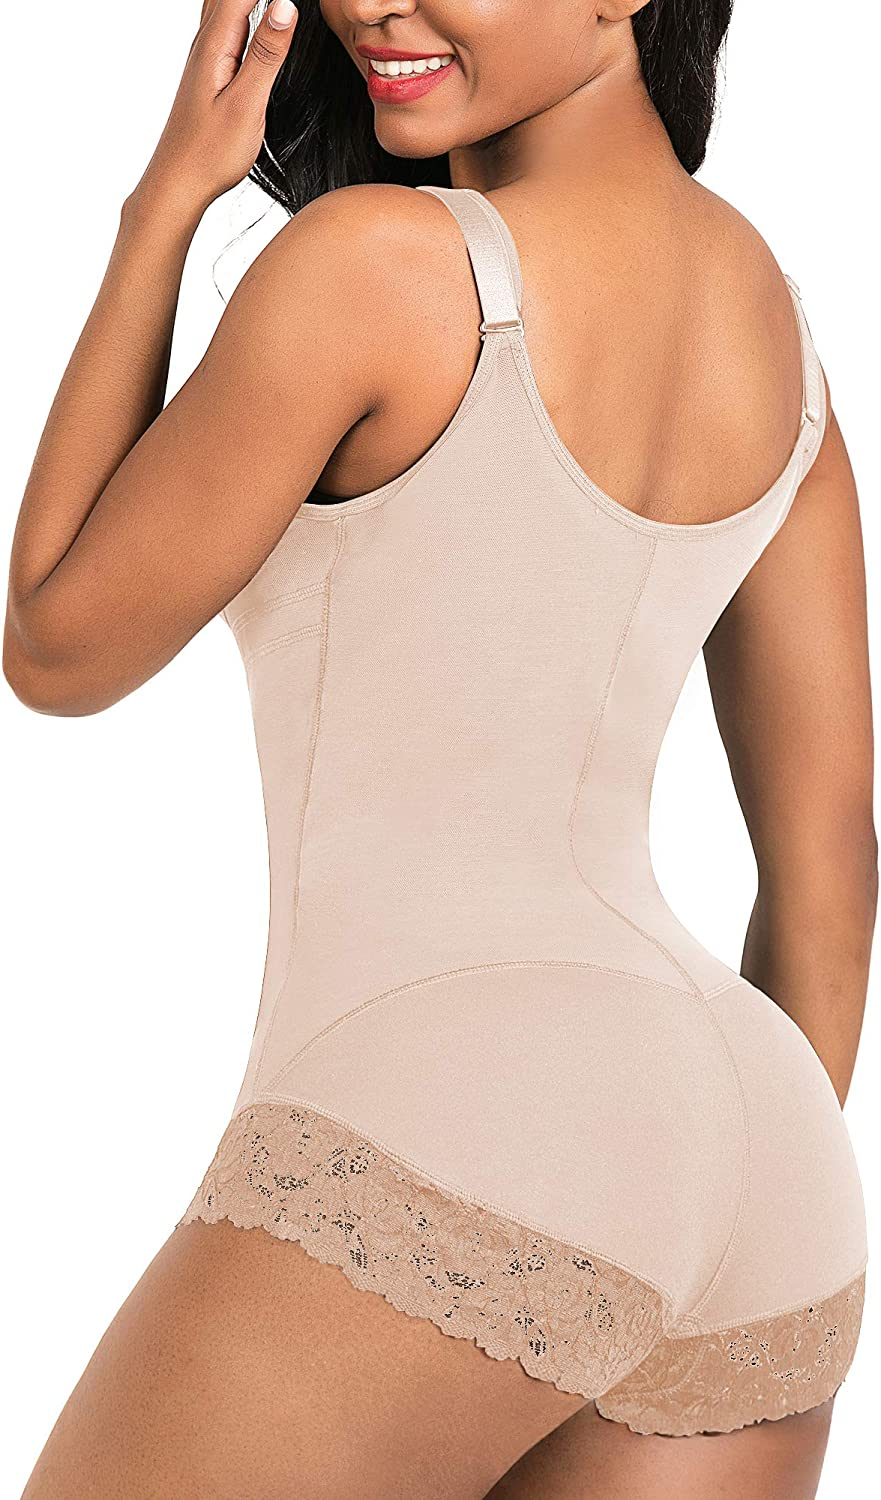 Details about  /Fajas Colombianas Reductoras Women High Waist Panty Slimming Body Shaper Briefs